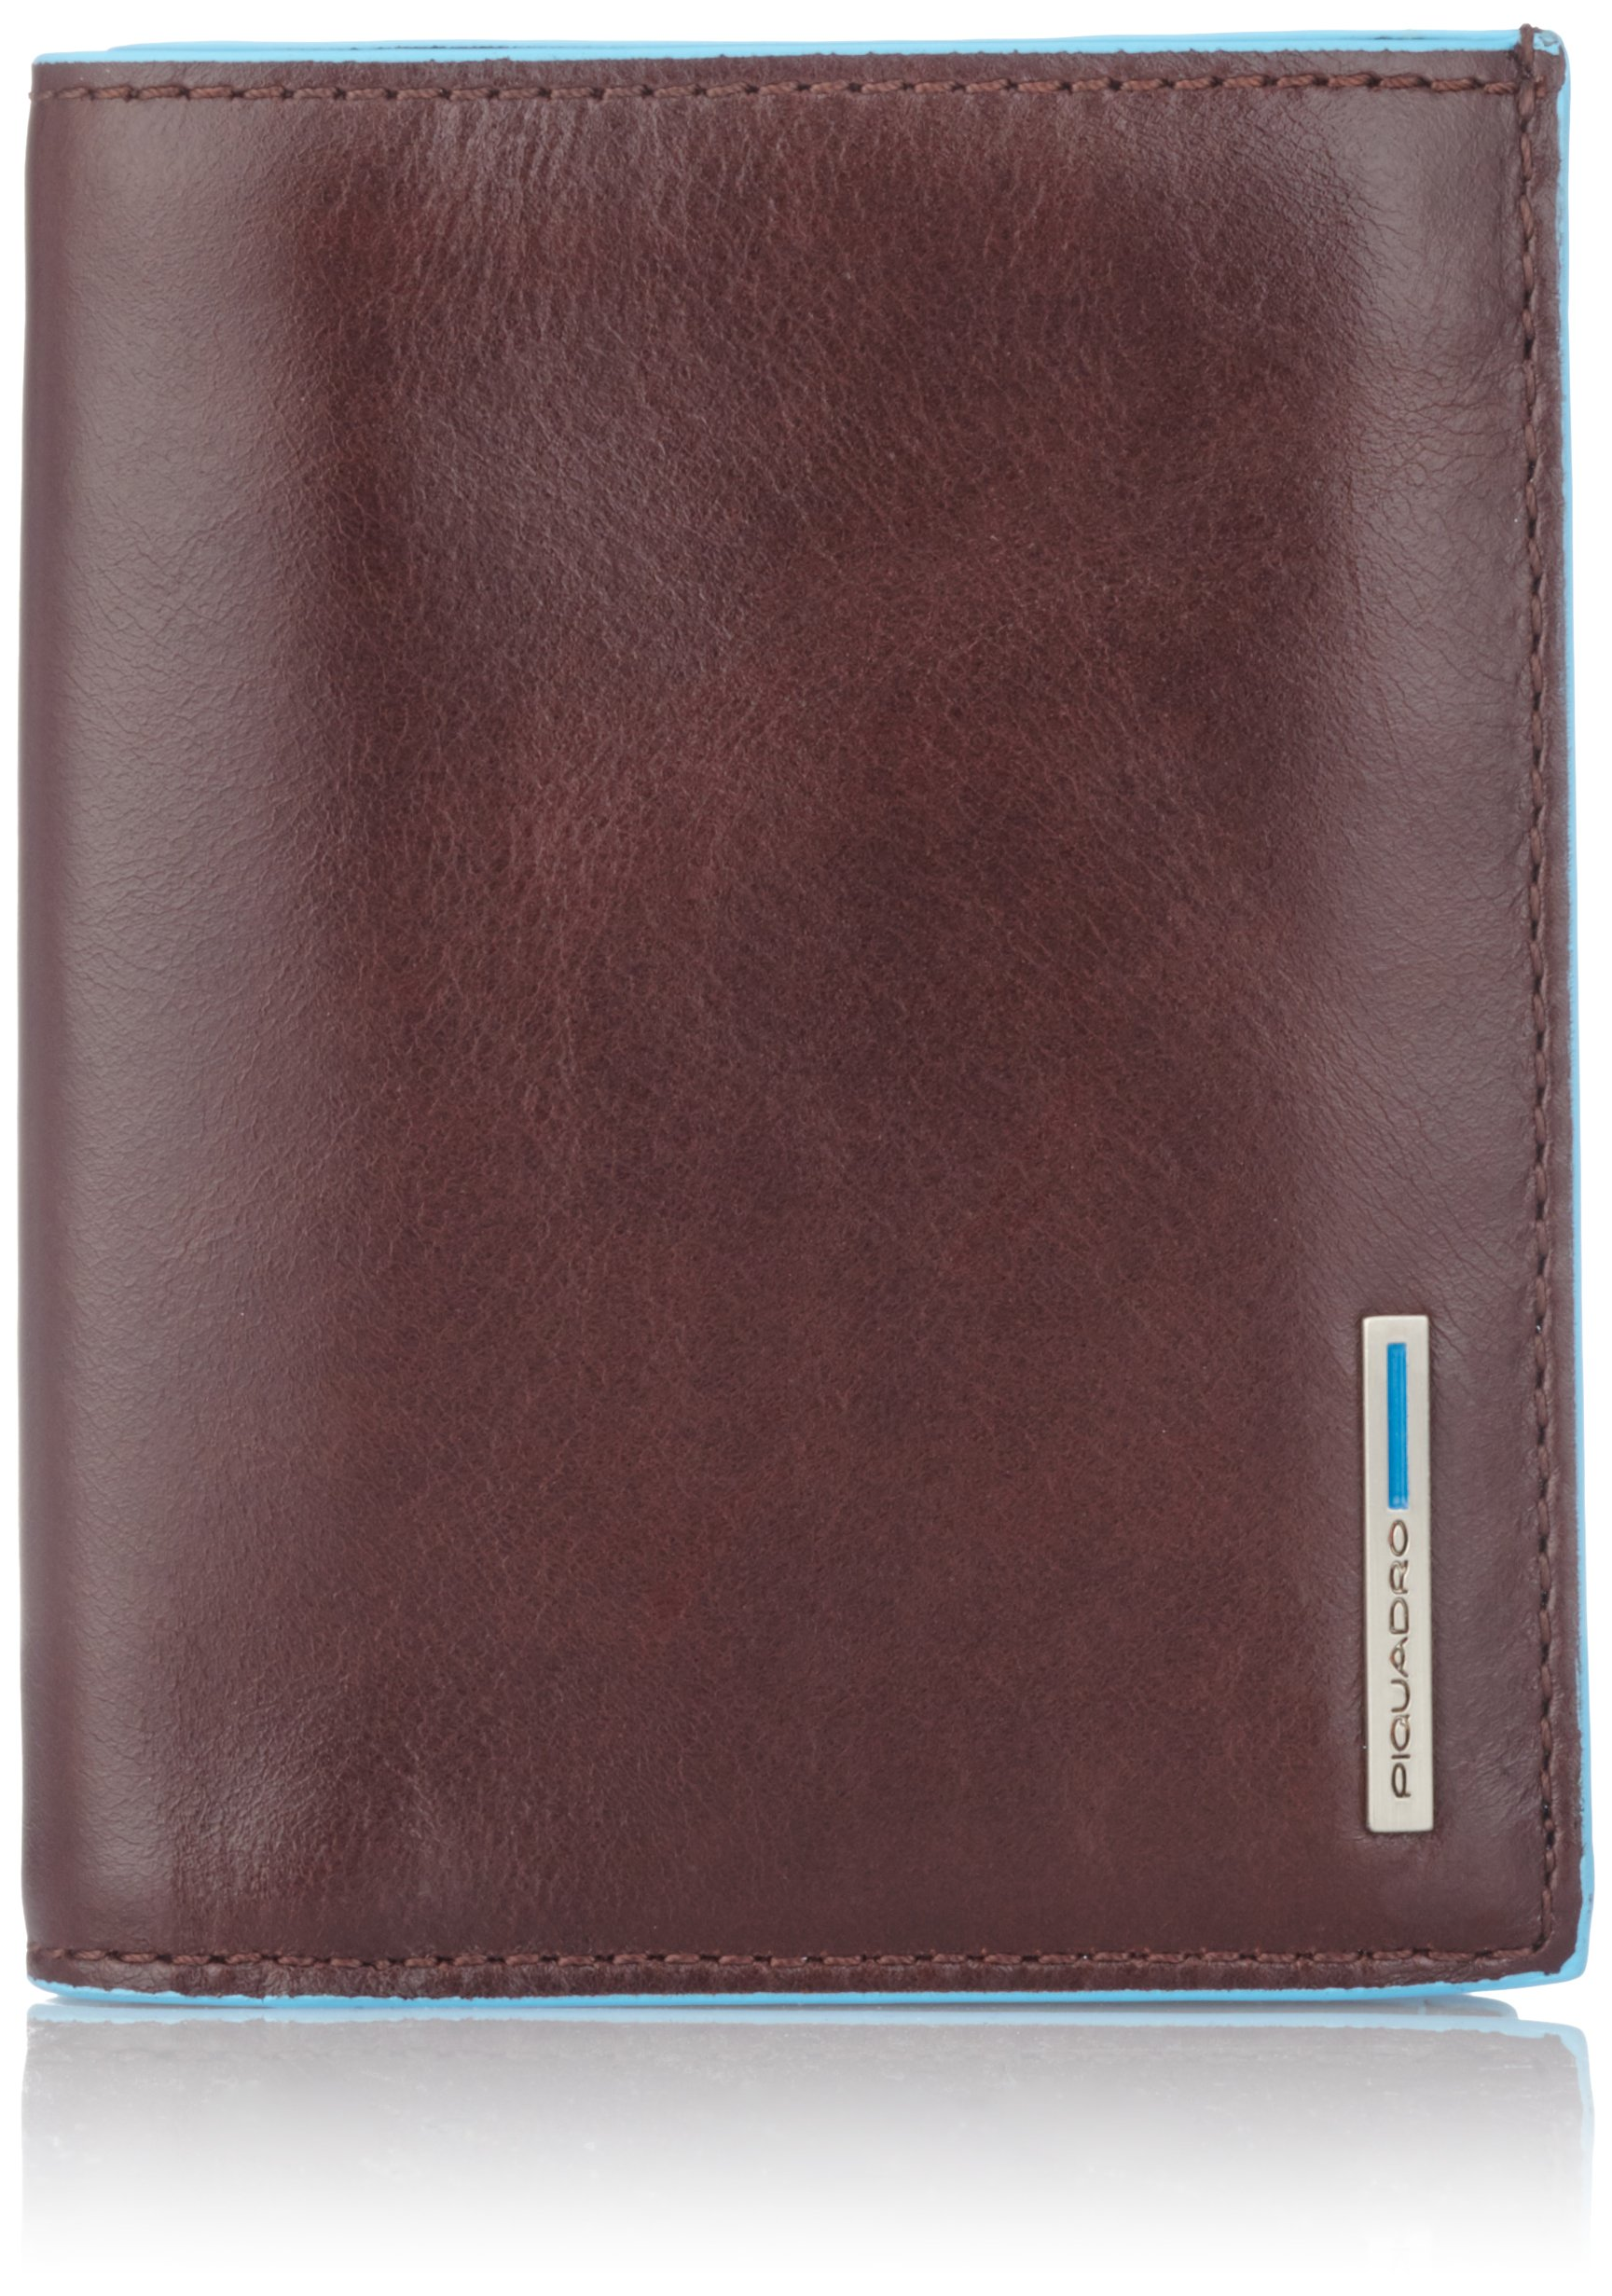 Piquadro Men's Wallet Vertical with Coin Case Facility, Mahogany, One Size